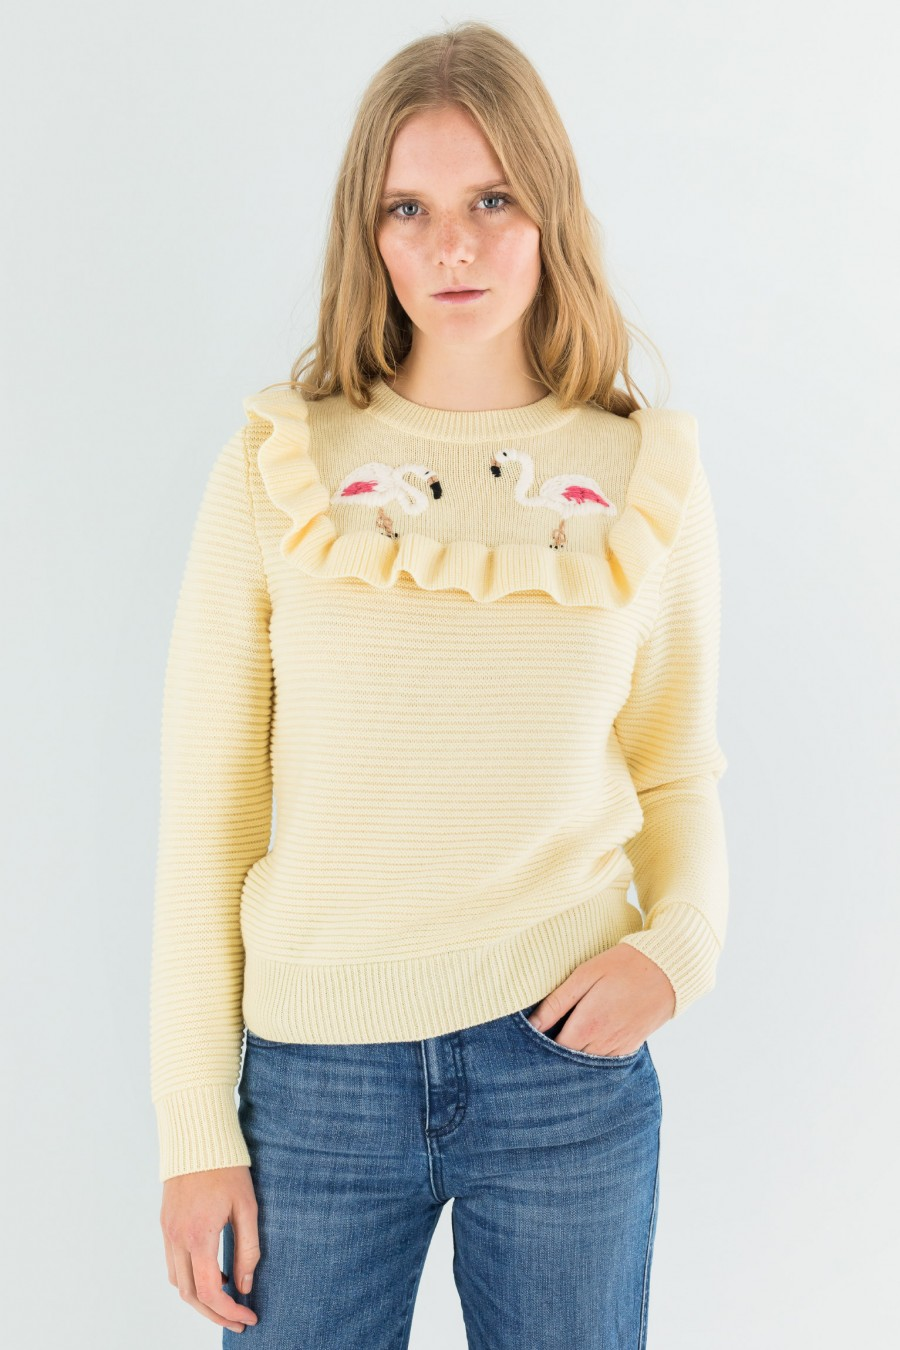 Pullover with flamingos